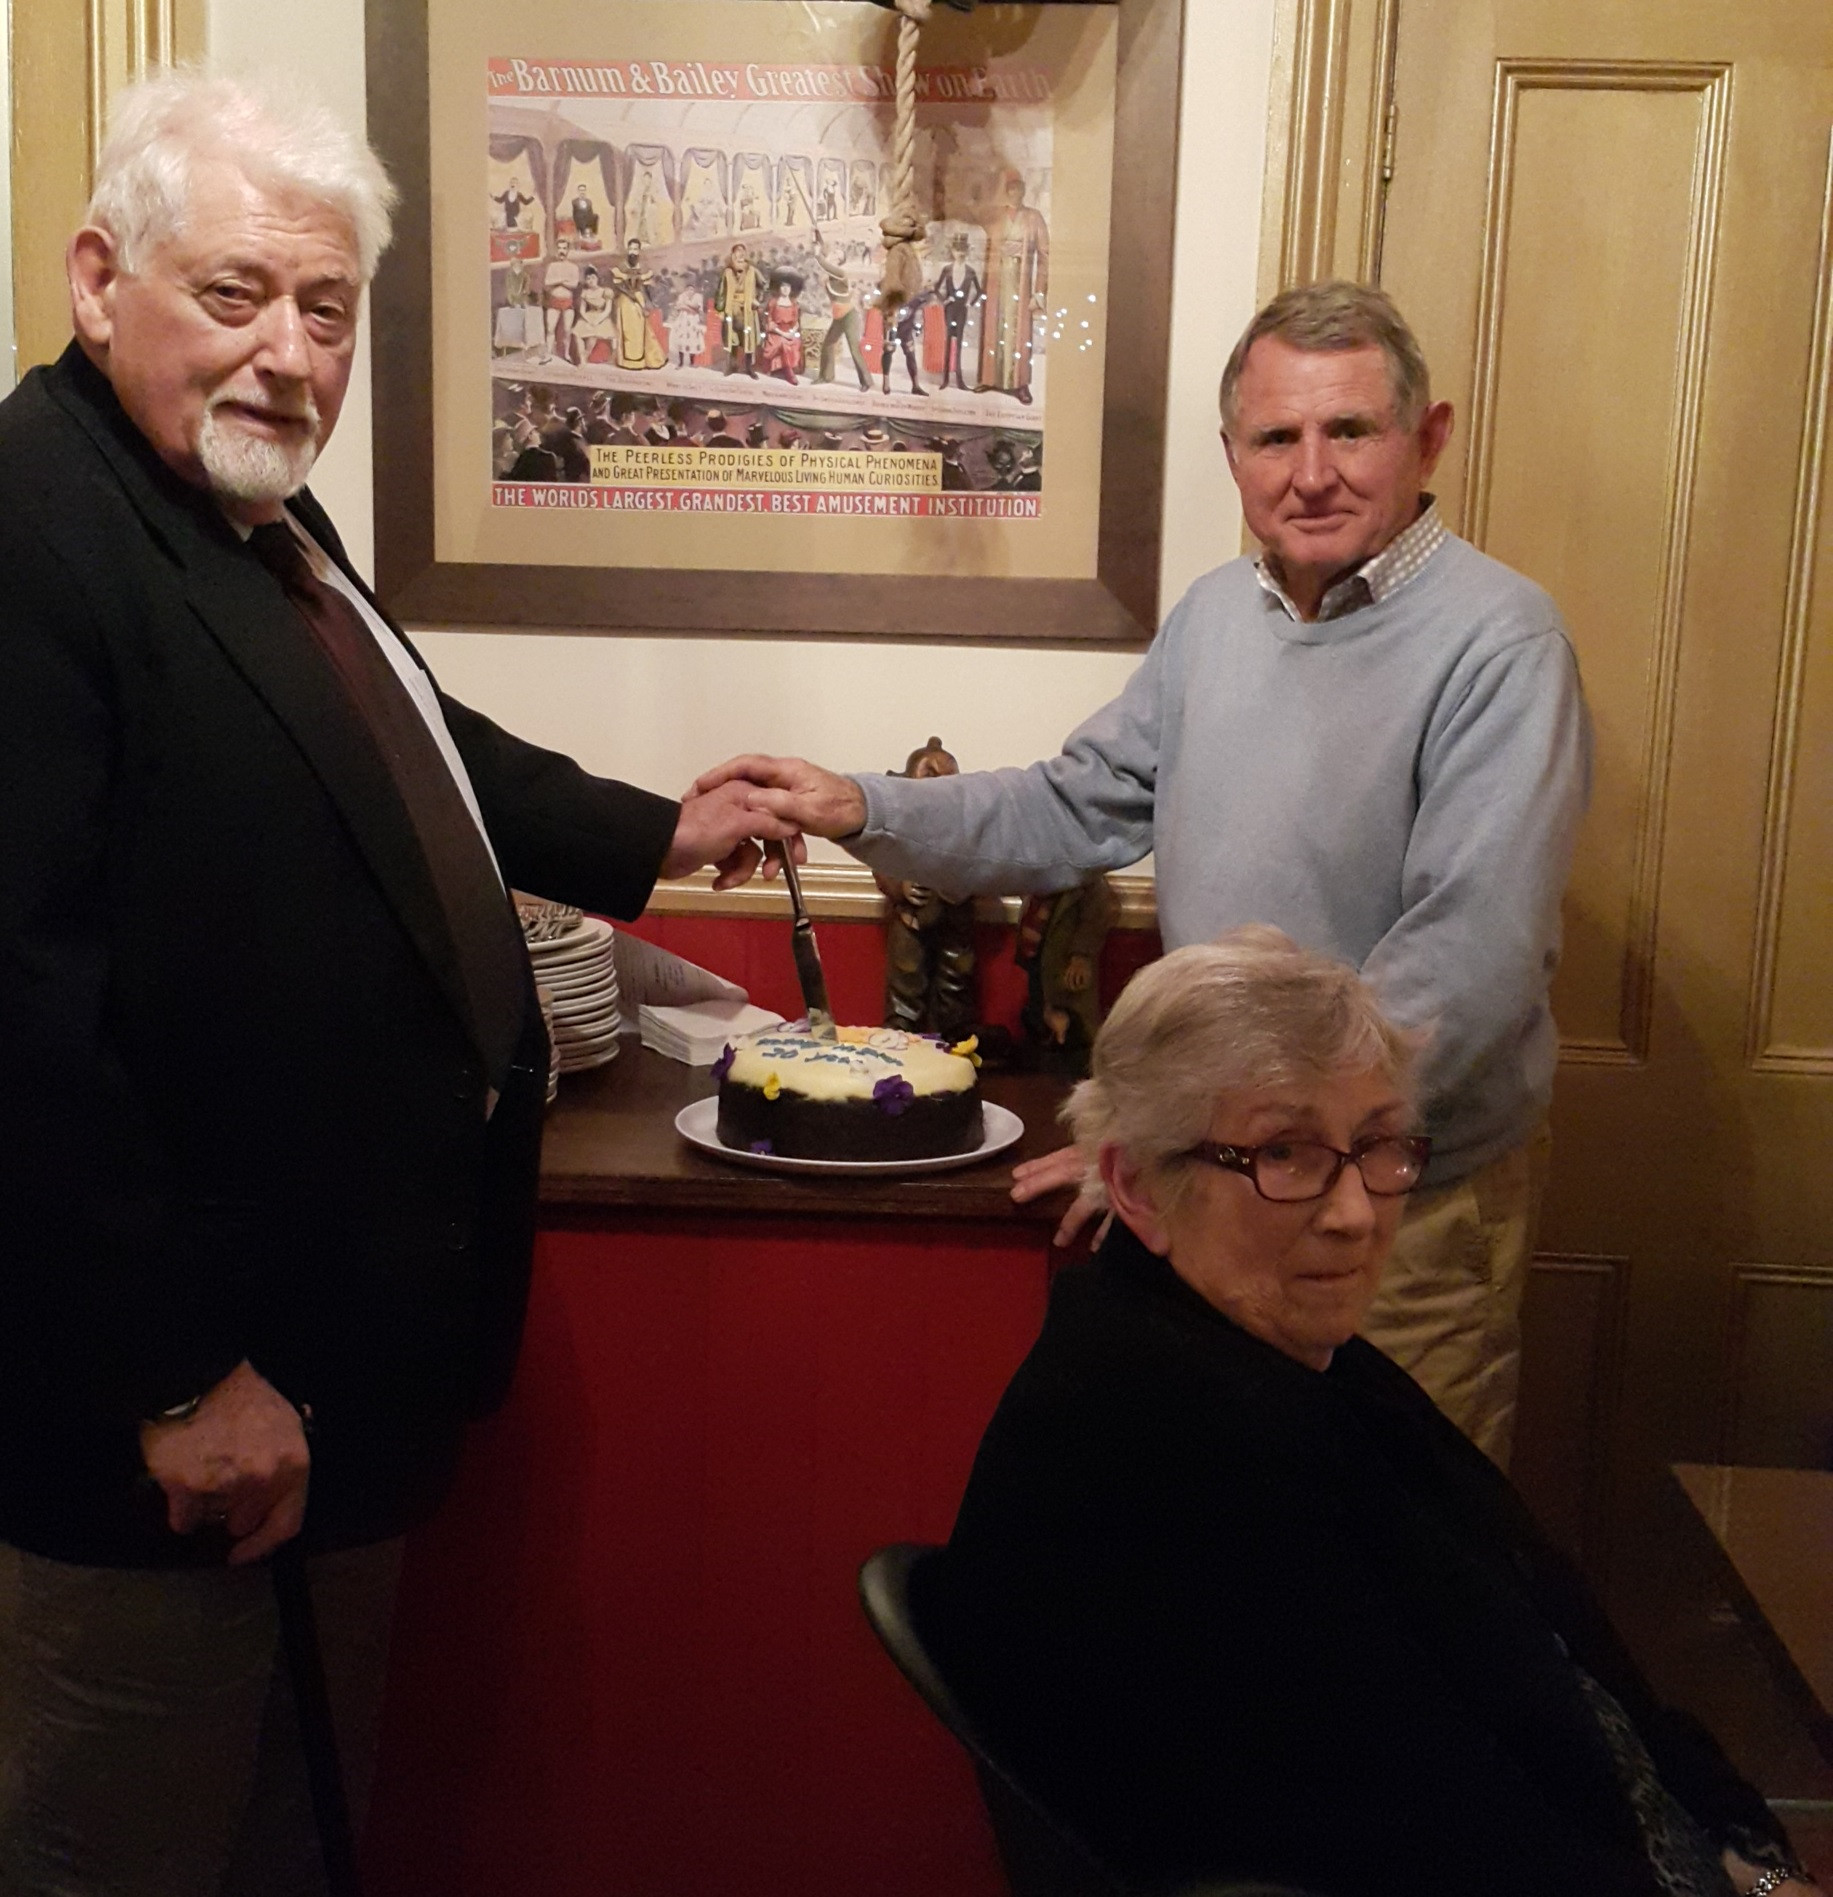 Many thanks to three wonderful contributors over the years, all three of whom have served as club president - Lloyd Thorburn (Charter Member), Ruth Hunt and Ian Denning (Charter President).